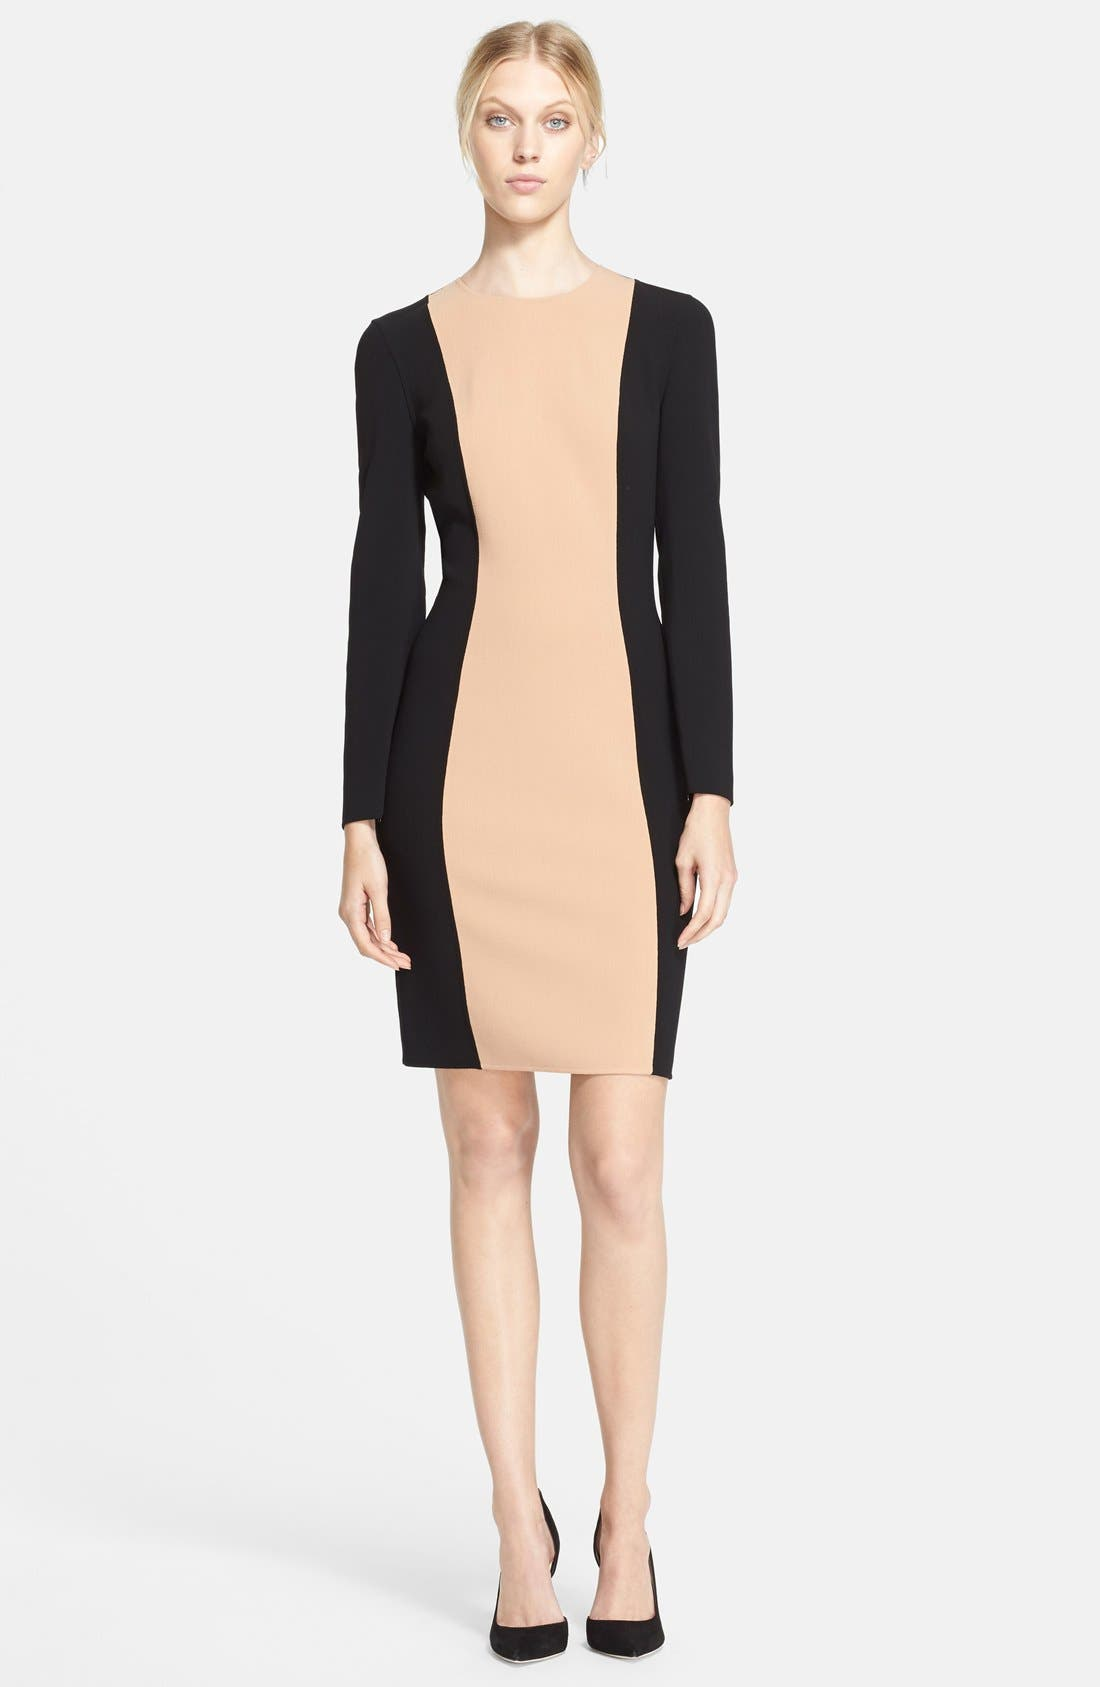 Alternate Image 1 Selected - Michael Kors Colorblock Crepe Dress